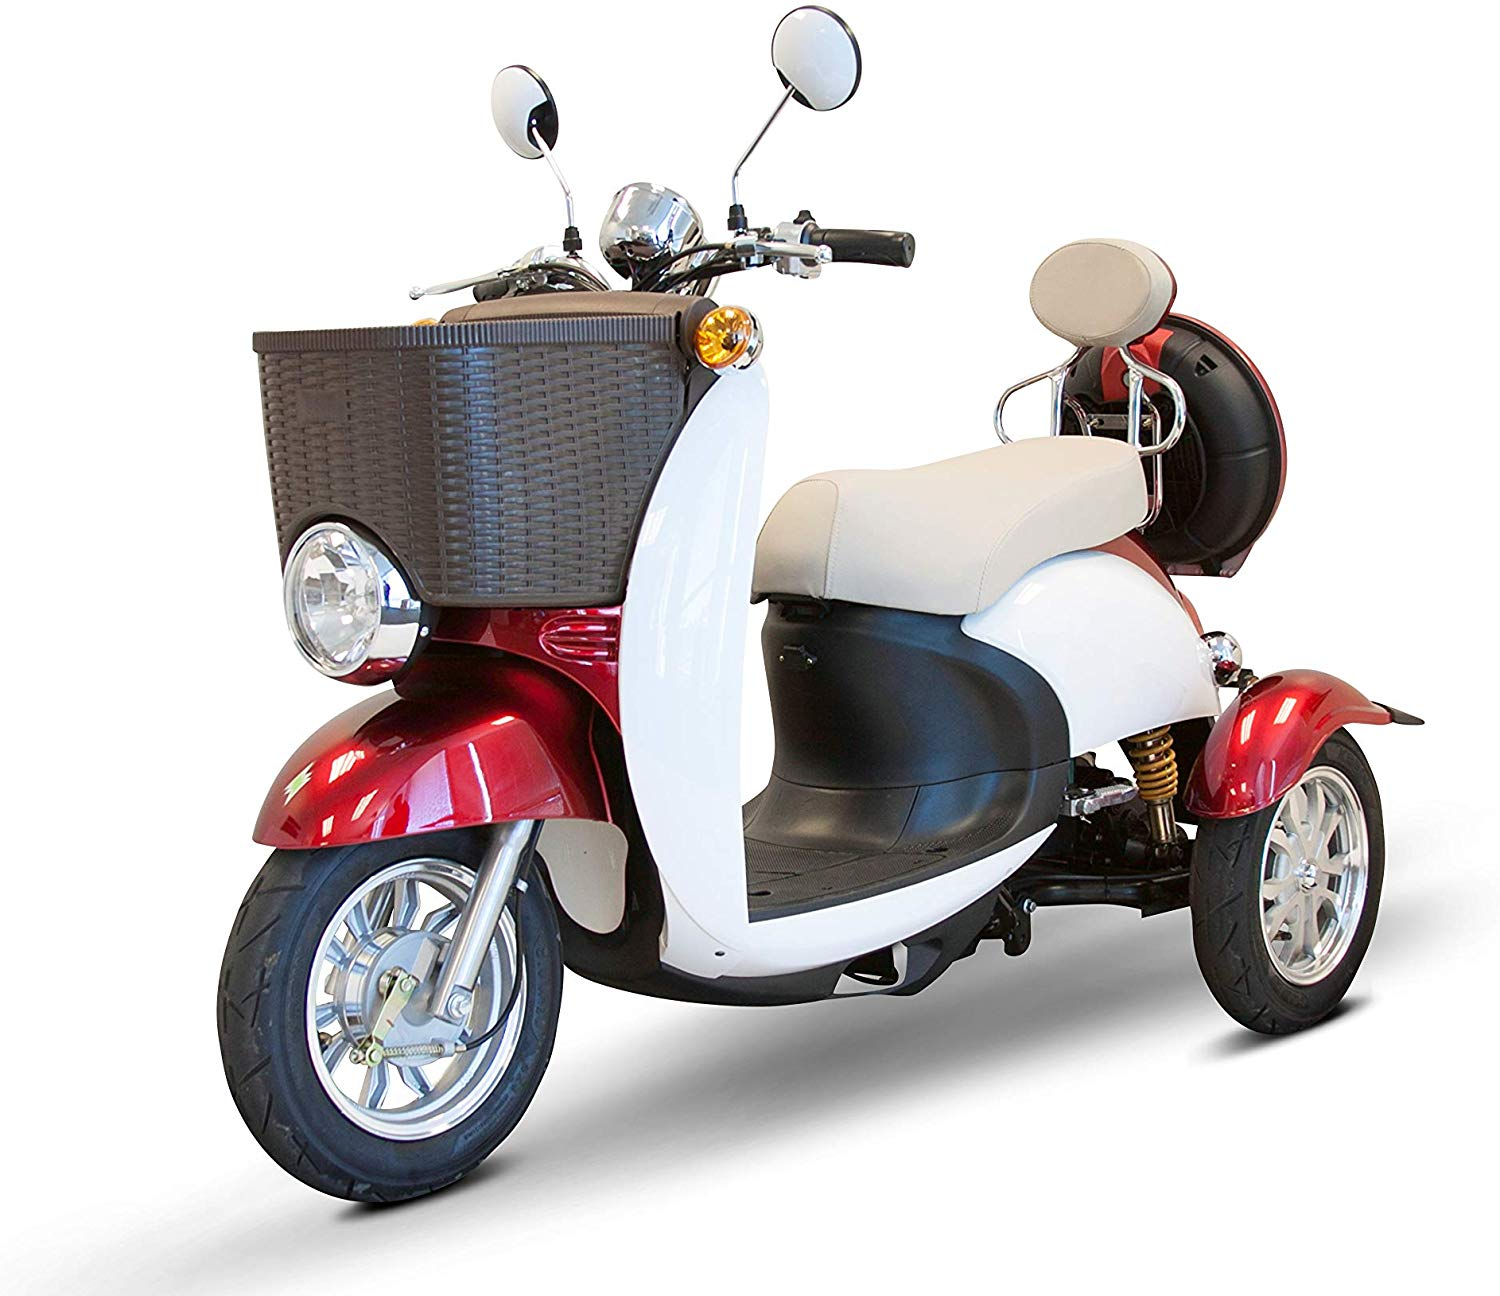 The Top 19 Best 150 CC Scooters Reviews & Buying Guide